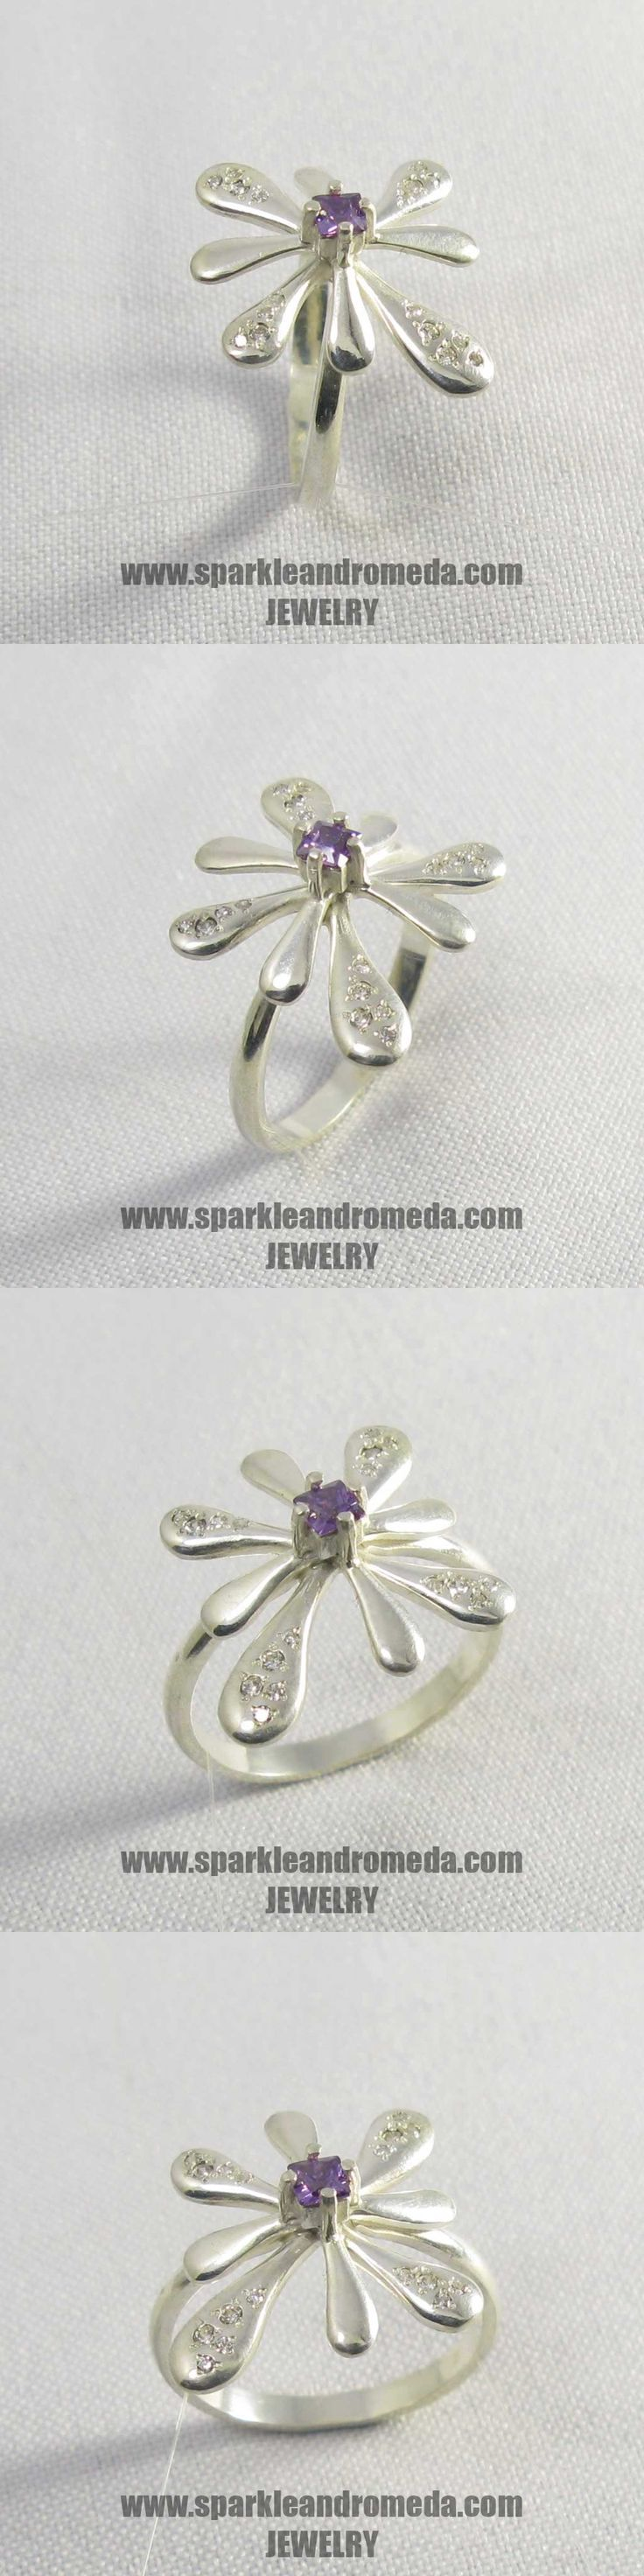 Sterling 925 silver ring with 1 square 3×3 mm violet amethyst color and 8 round 1,25 mm and 8 round 1 mm white color cubic zirconia gemstones.